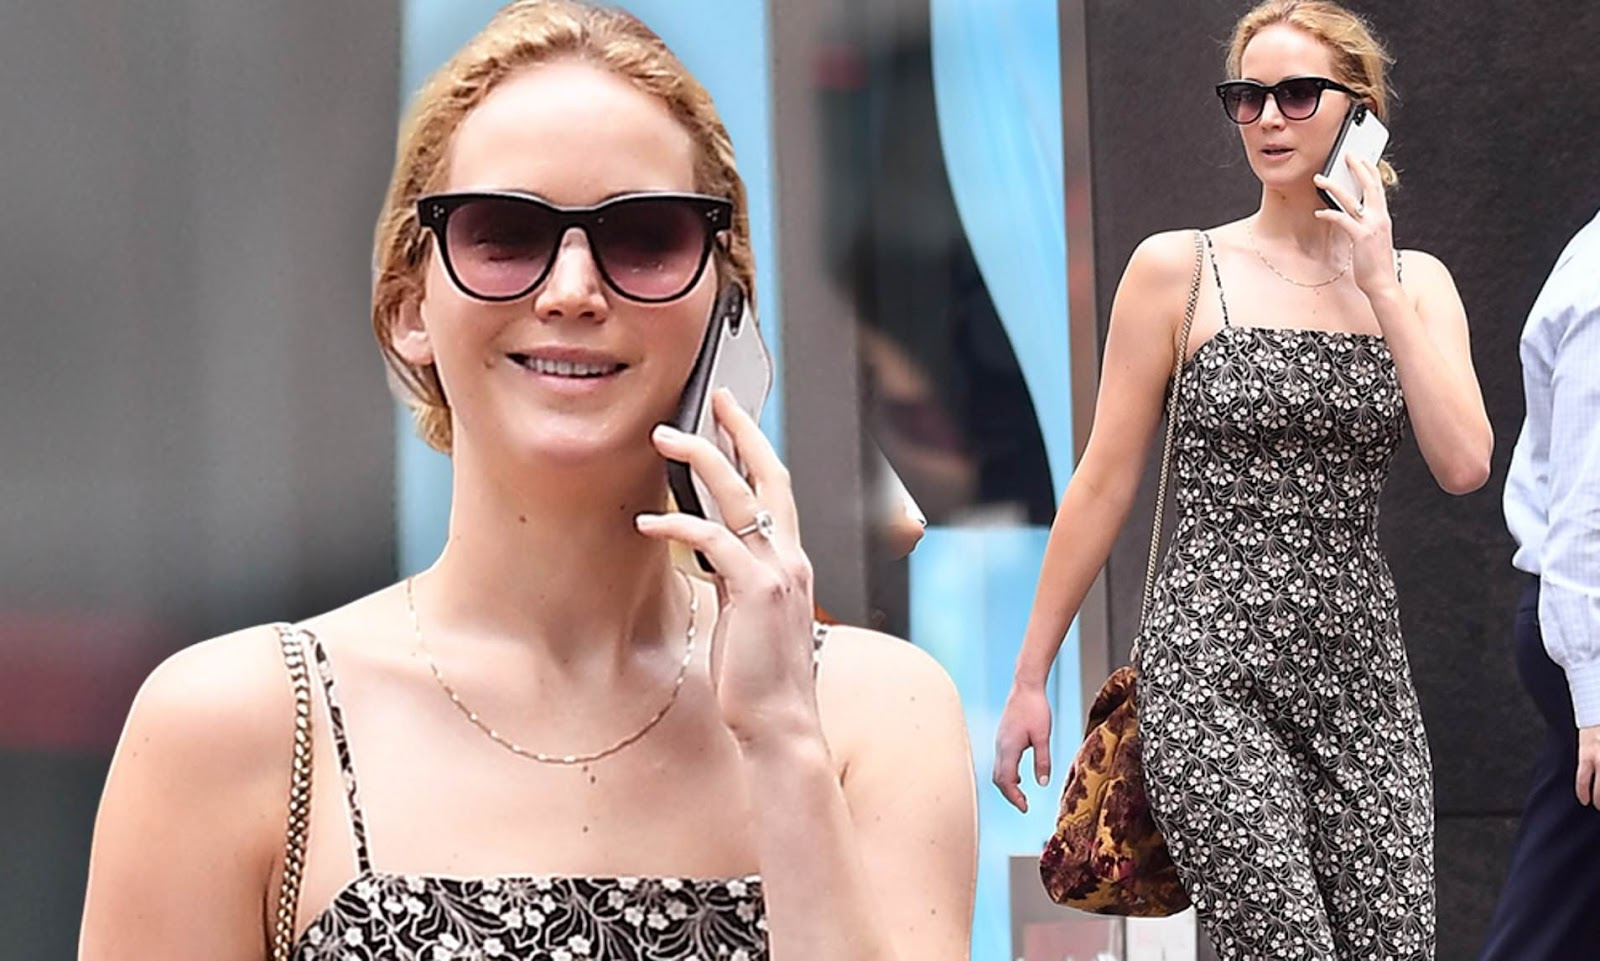 Such a beauty as Jennifer Lawrence is intriguing in every picture, every perspective